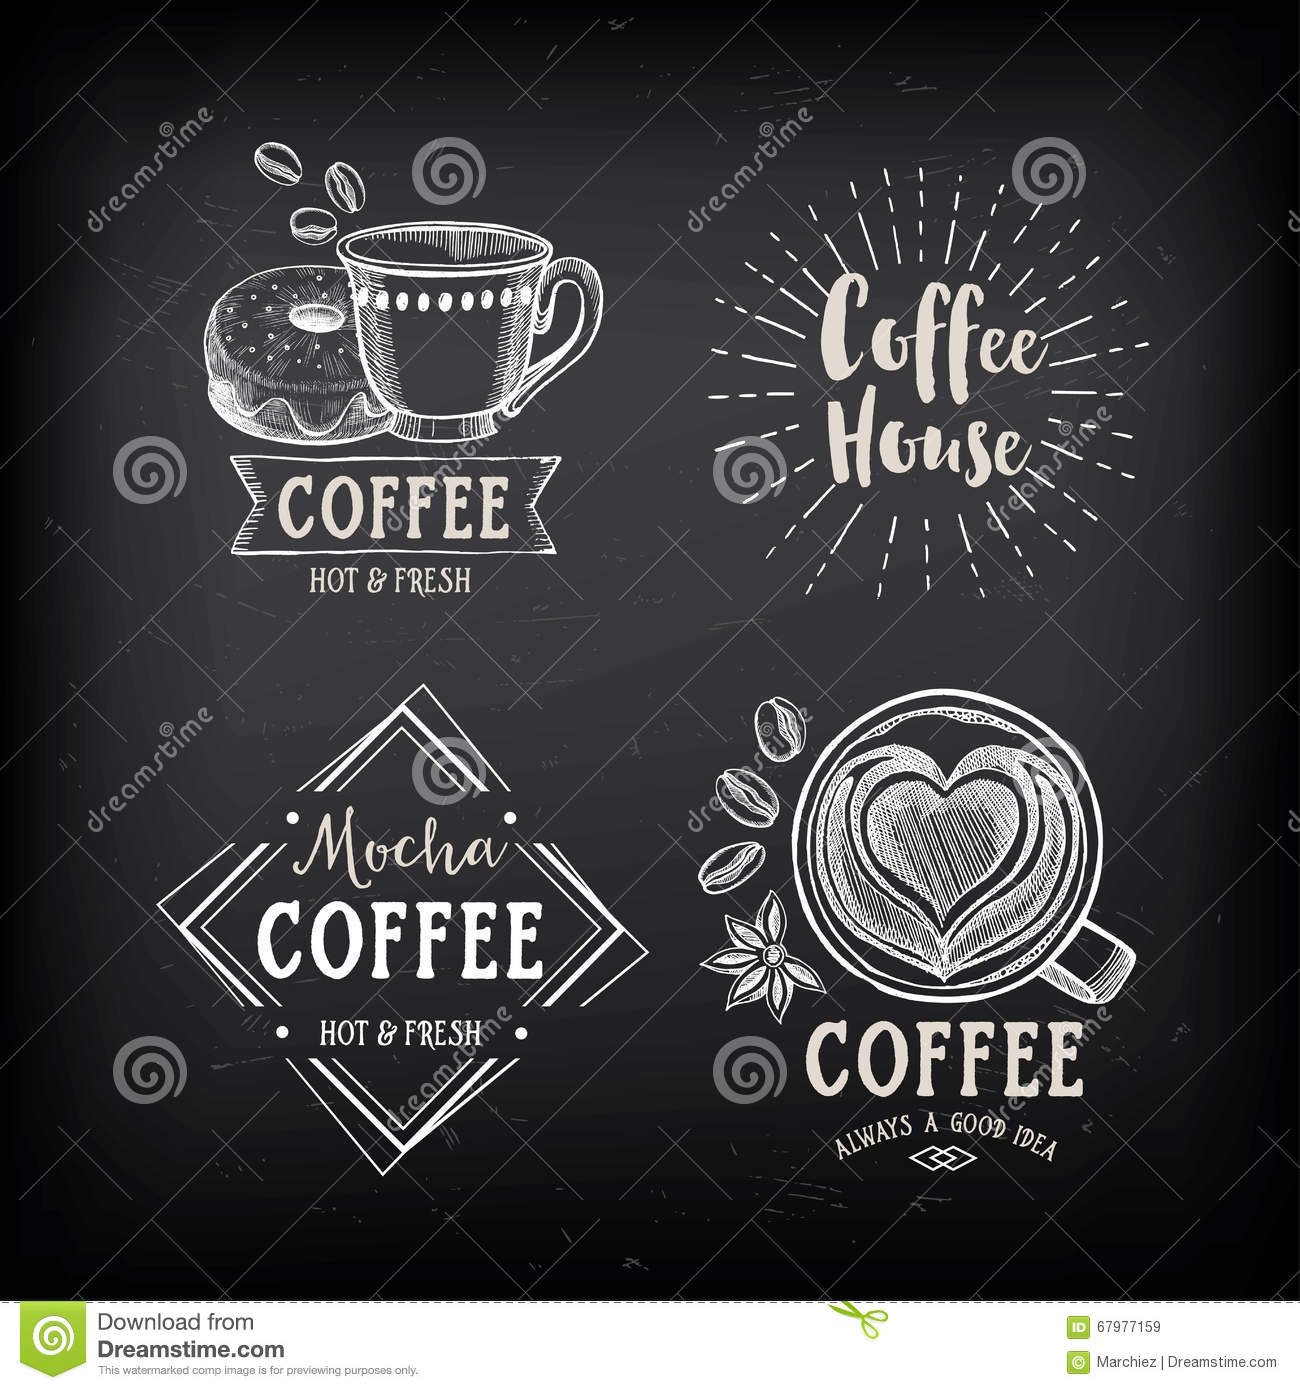 For restaurant pictures graphics illustrations clipart photos - Cafe Coffee Design Drawing Drink Graphic